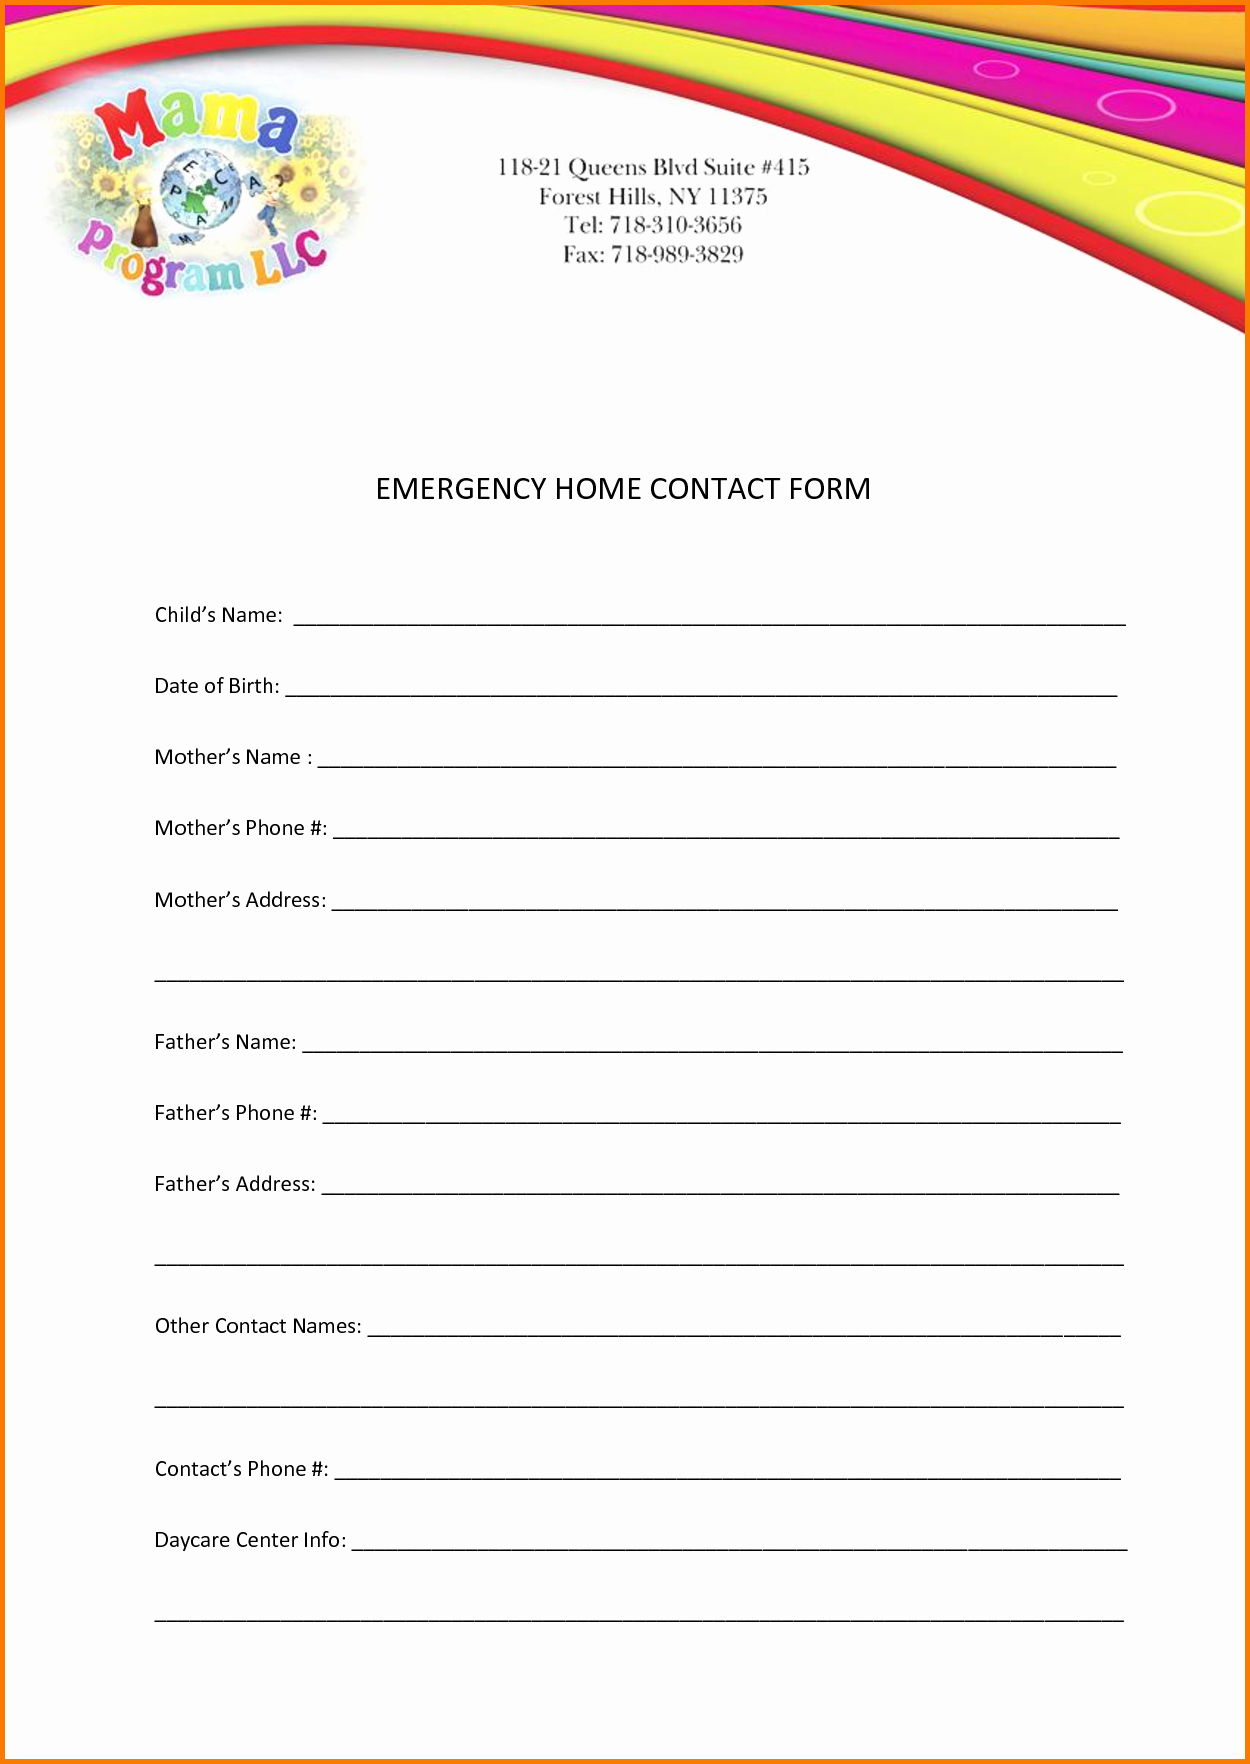 Emergency Contact form Template Unique Printable Calendar April 2017 Free Home Interior Design